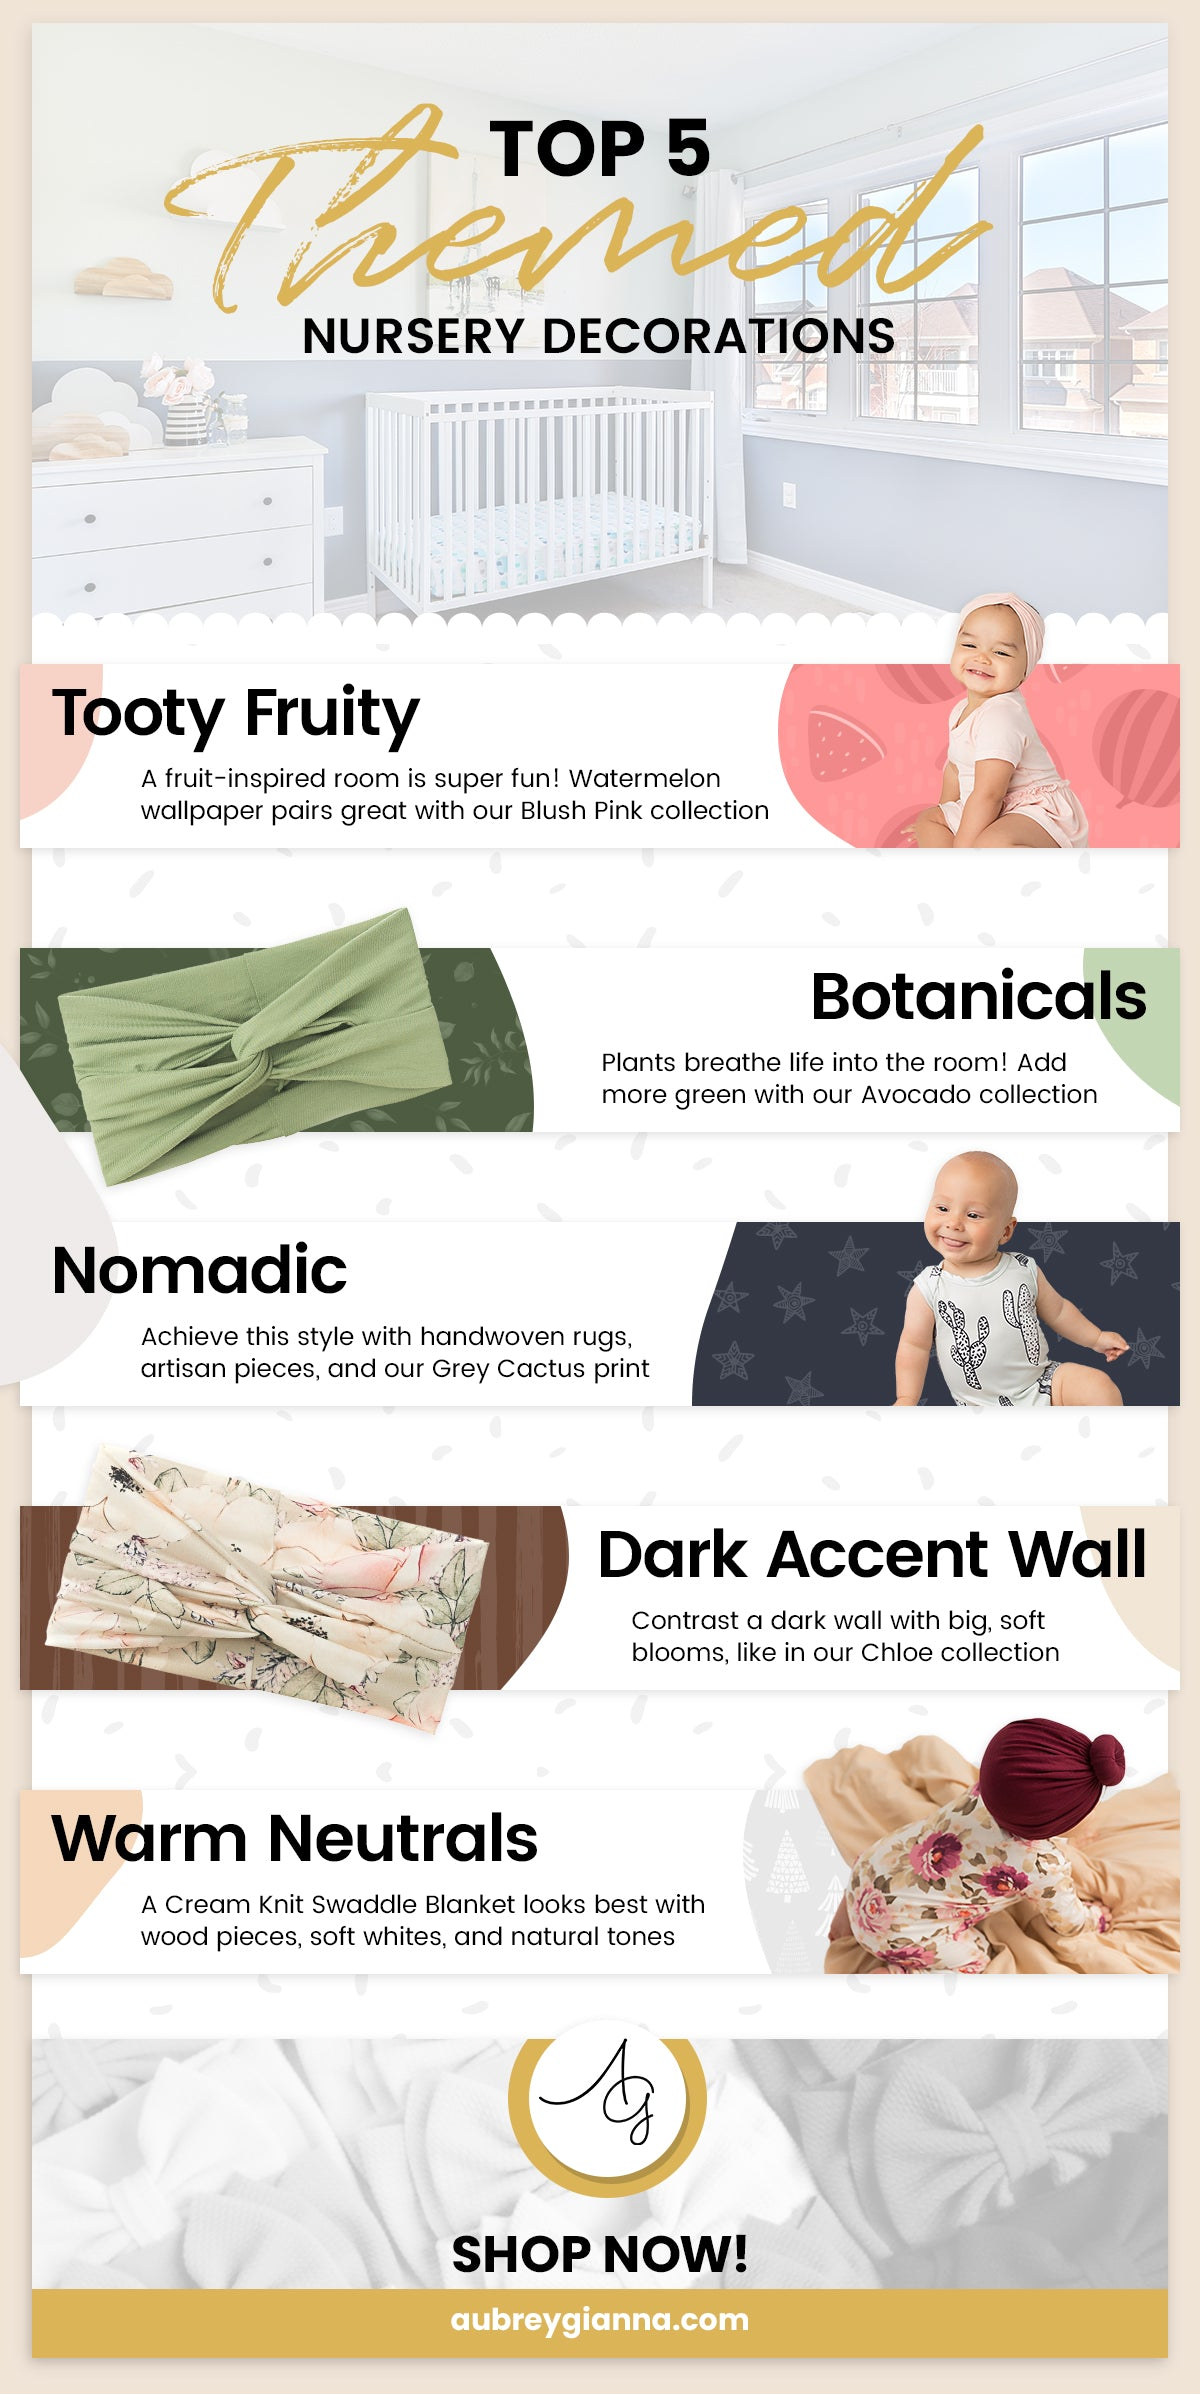 top five themed nursery decorations of 2020 infographic